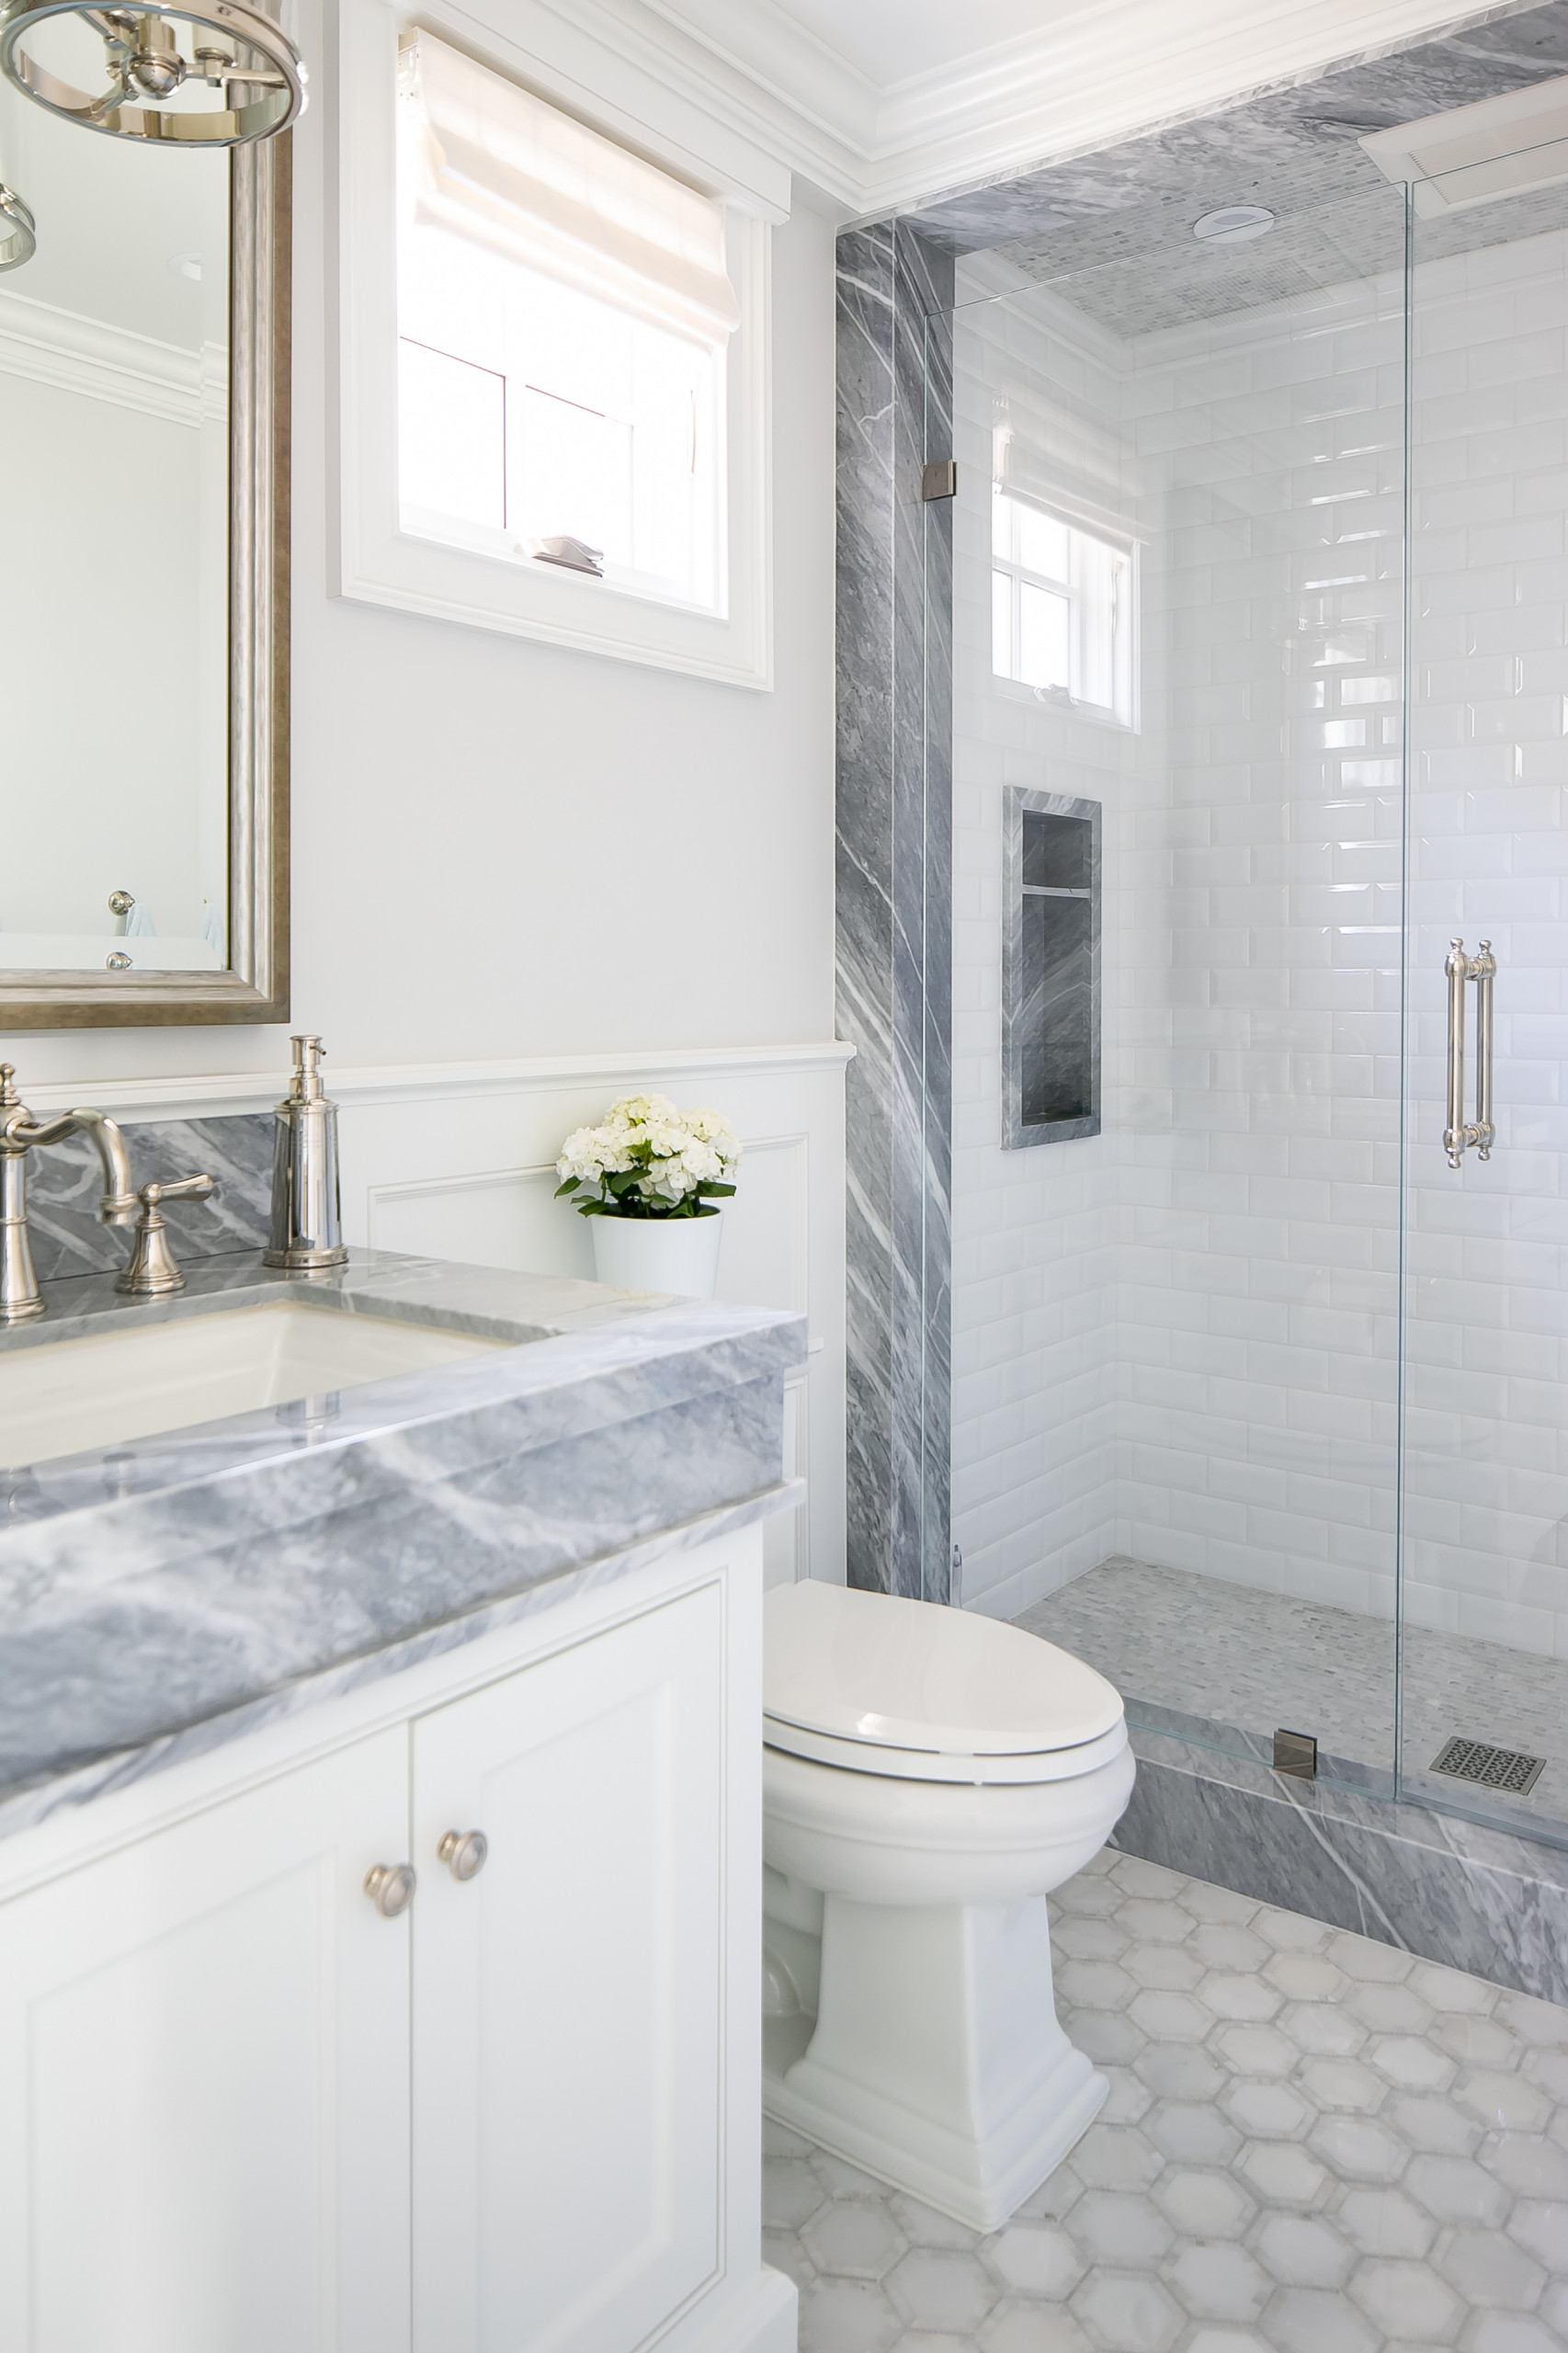 75 Beautiful Wainscoting Bathroom Pictures Ideas April 2021 Houzz